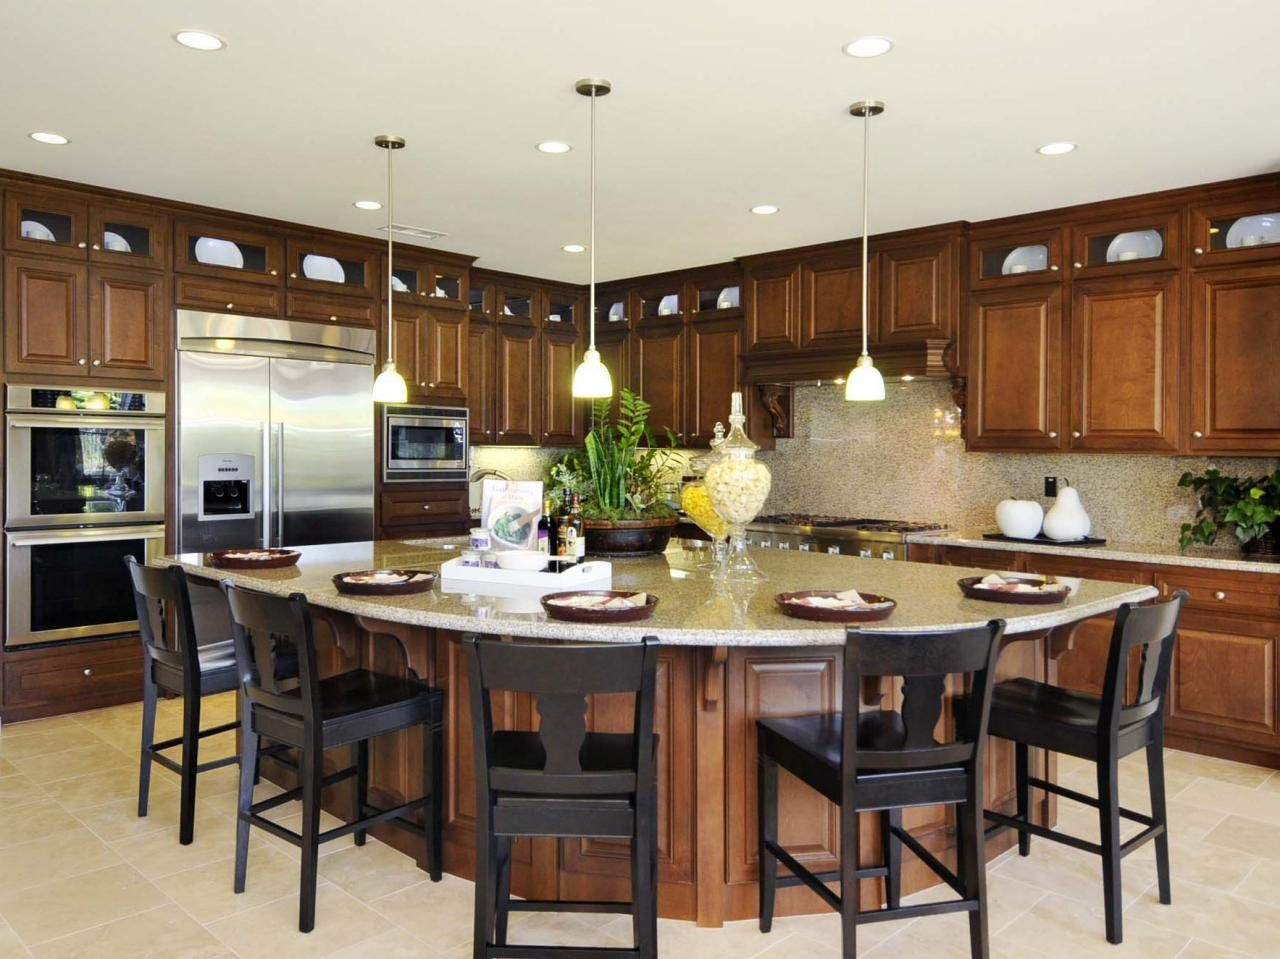 big kitchen islands black appliances island design ideas pictures options tips designs choose layouts remodeling materials hgtv